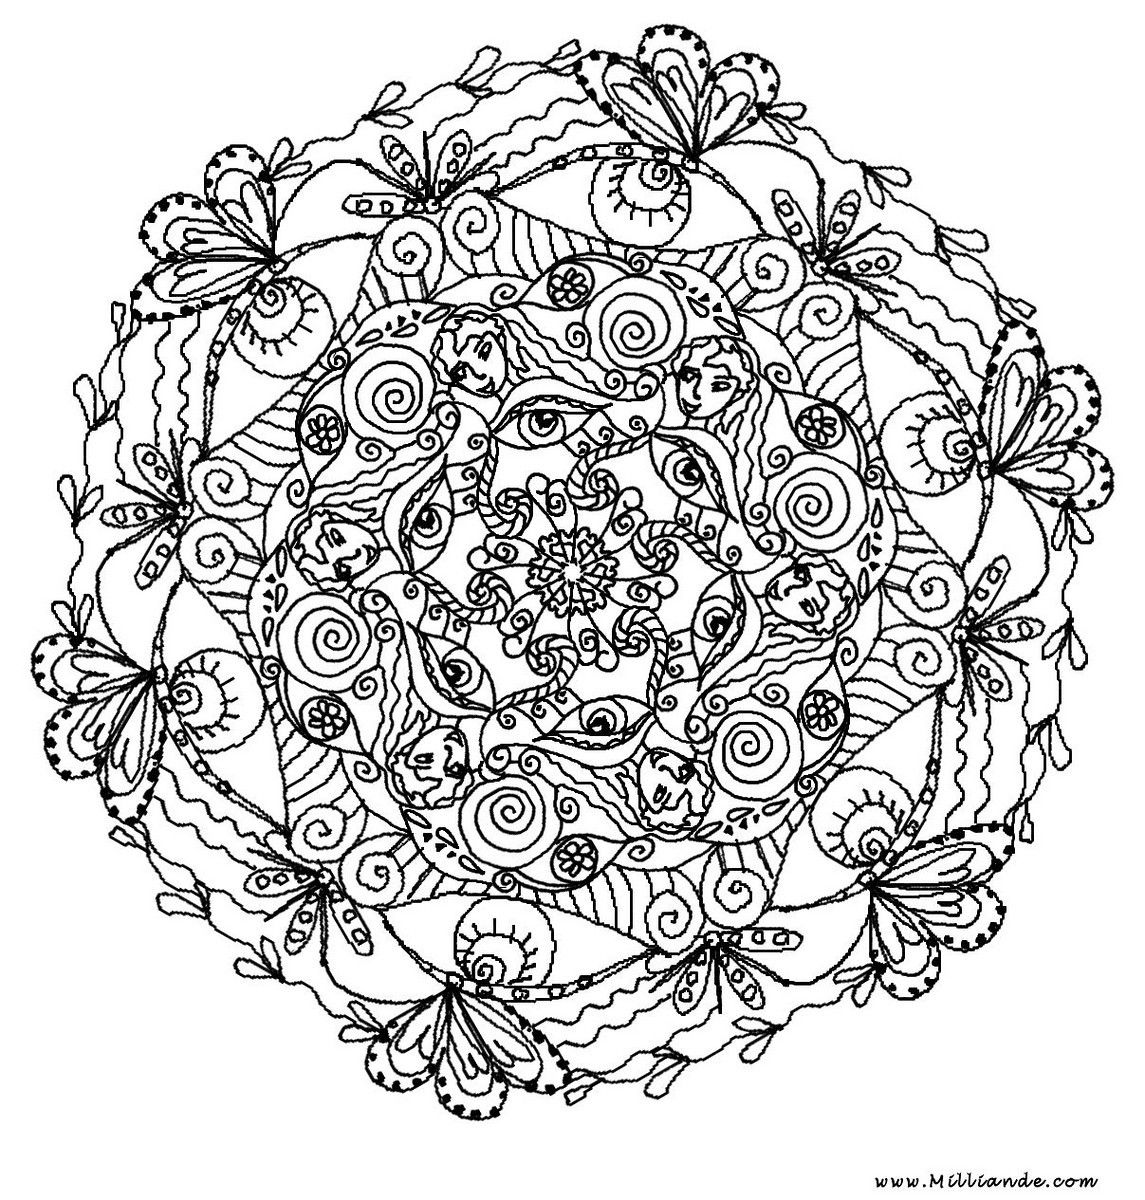 Adult coloring pages free printables mandala - Free Printable Mandala Coloring Pages For Adults Coloring Pages